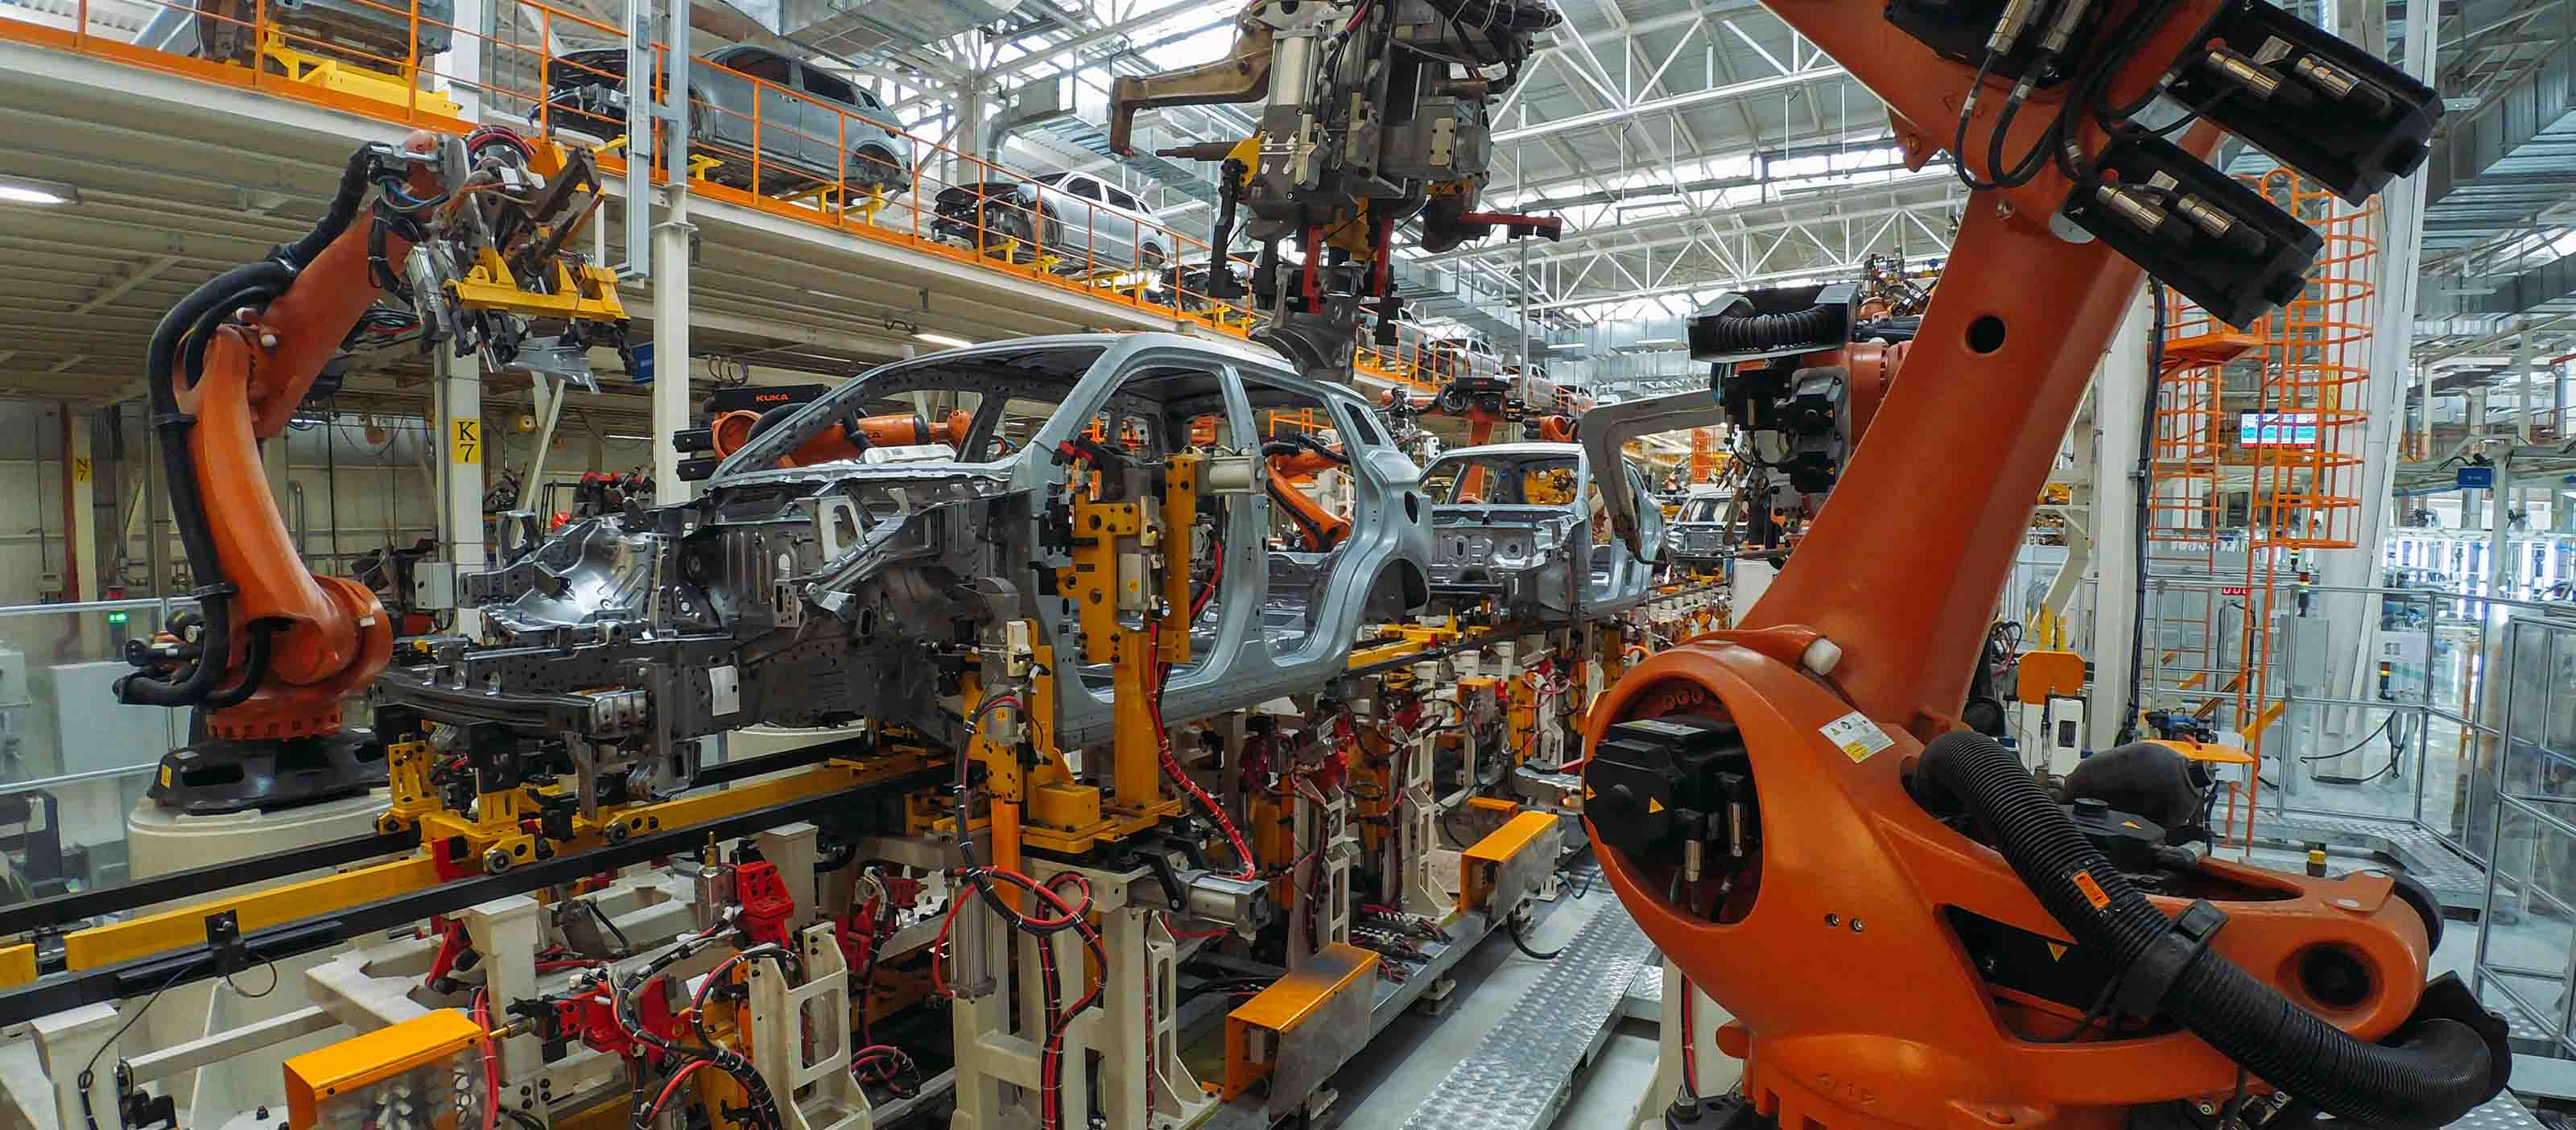 Industrial software to support automotive manufacturers | GE DigitalIndustrial software to support automotive manufacturers | GE DigitalIndustrial software to support automotive manufacturers | GE DigitalIndustrial software to support automotive manufacturers | GE Digital